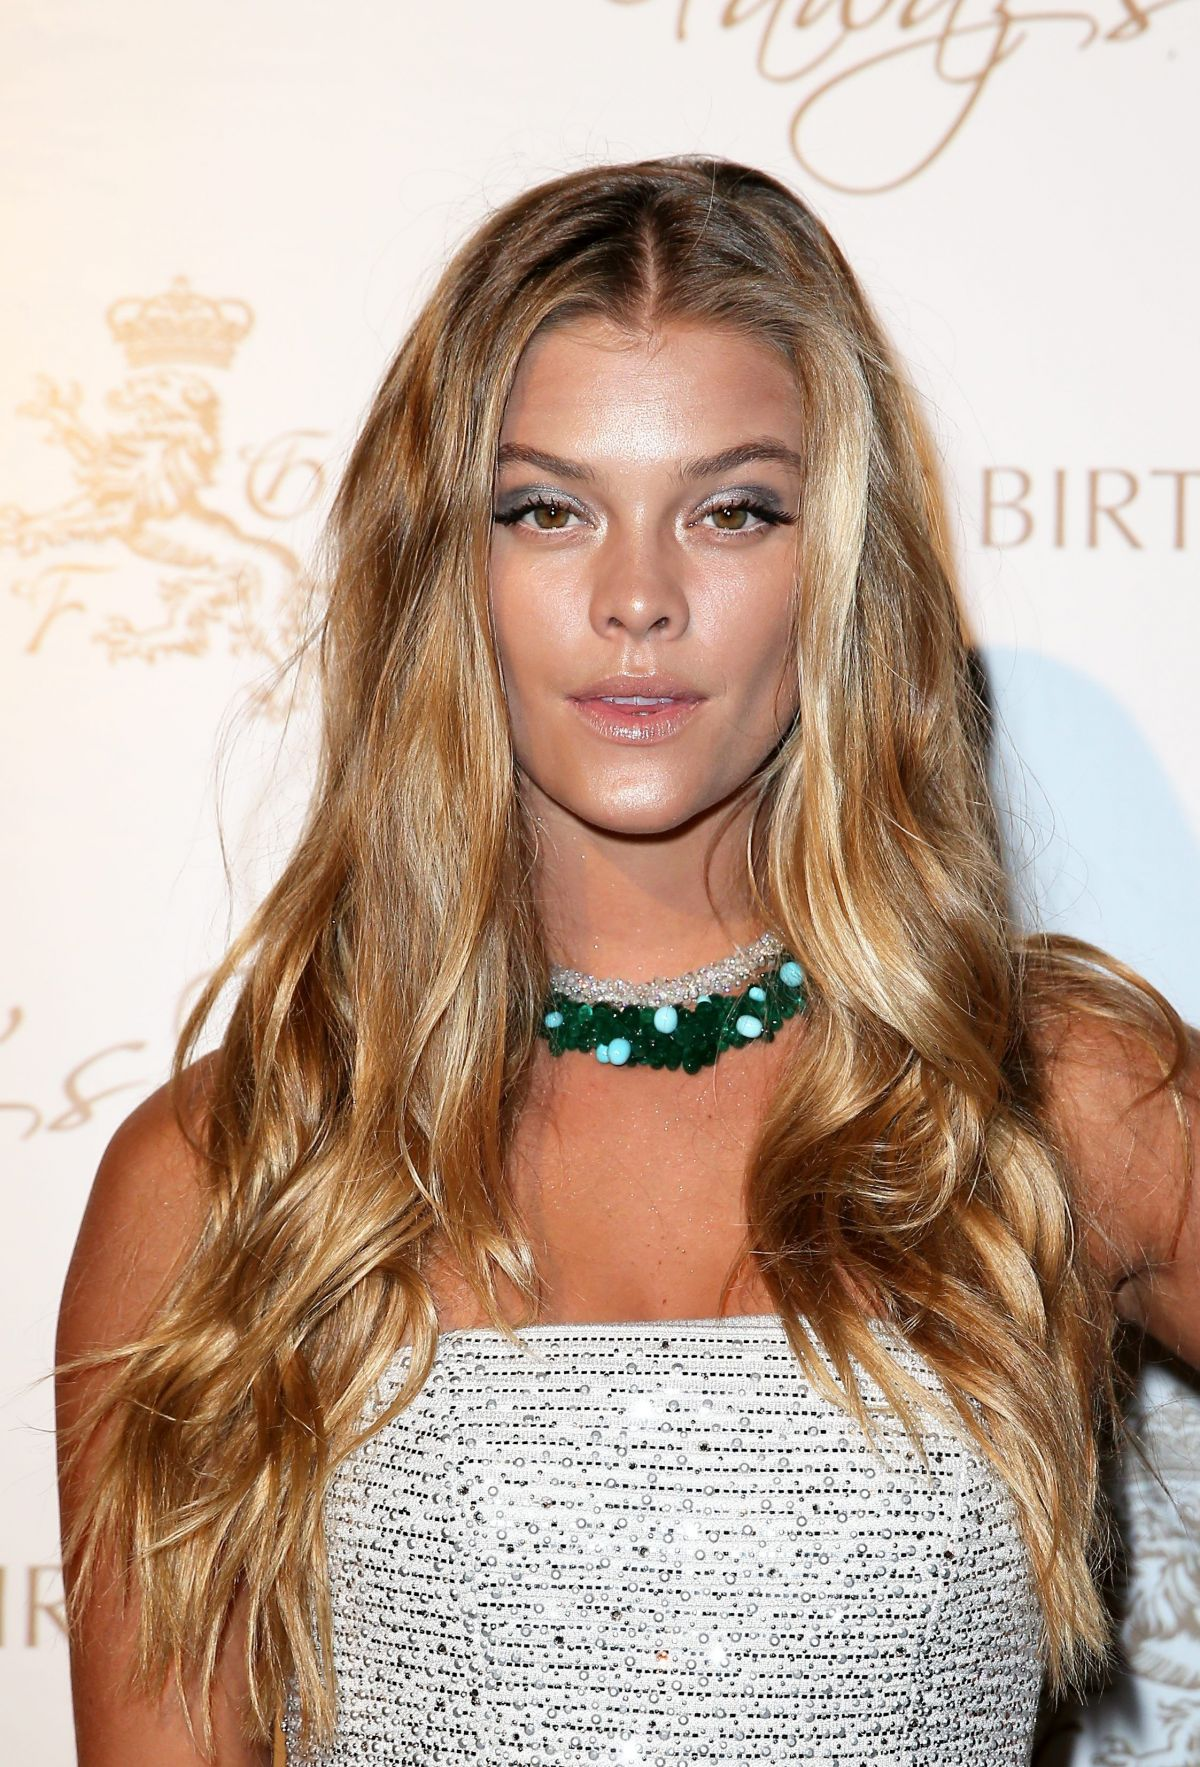 NINA AGDAL At Fawaz Gruosis Birthday Party In Sardinia 08